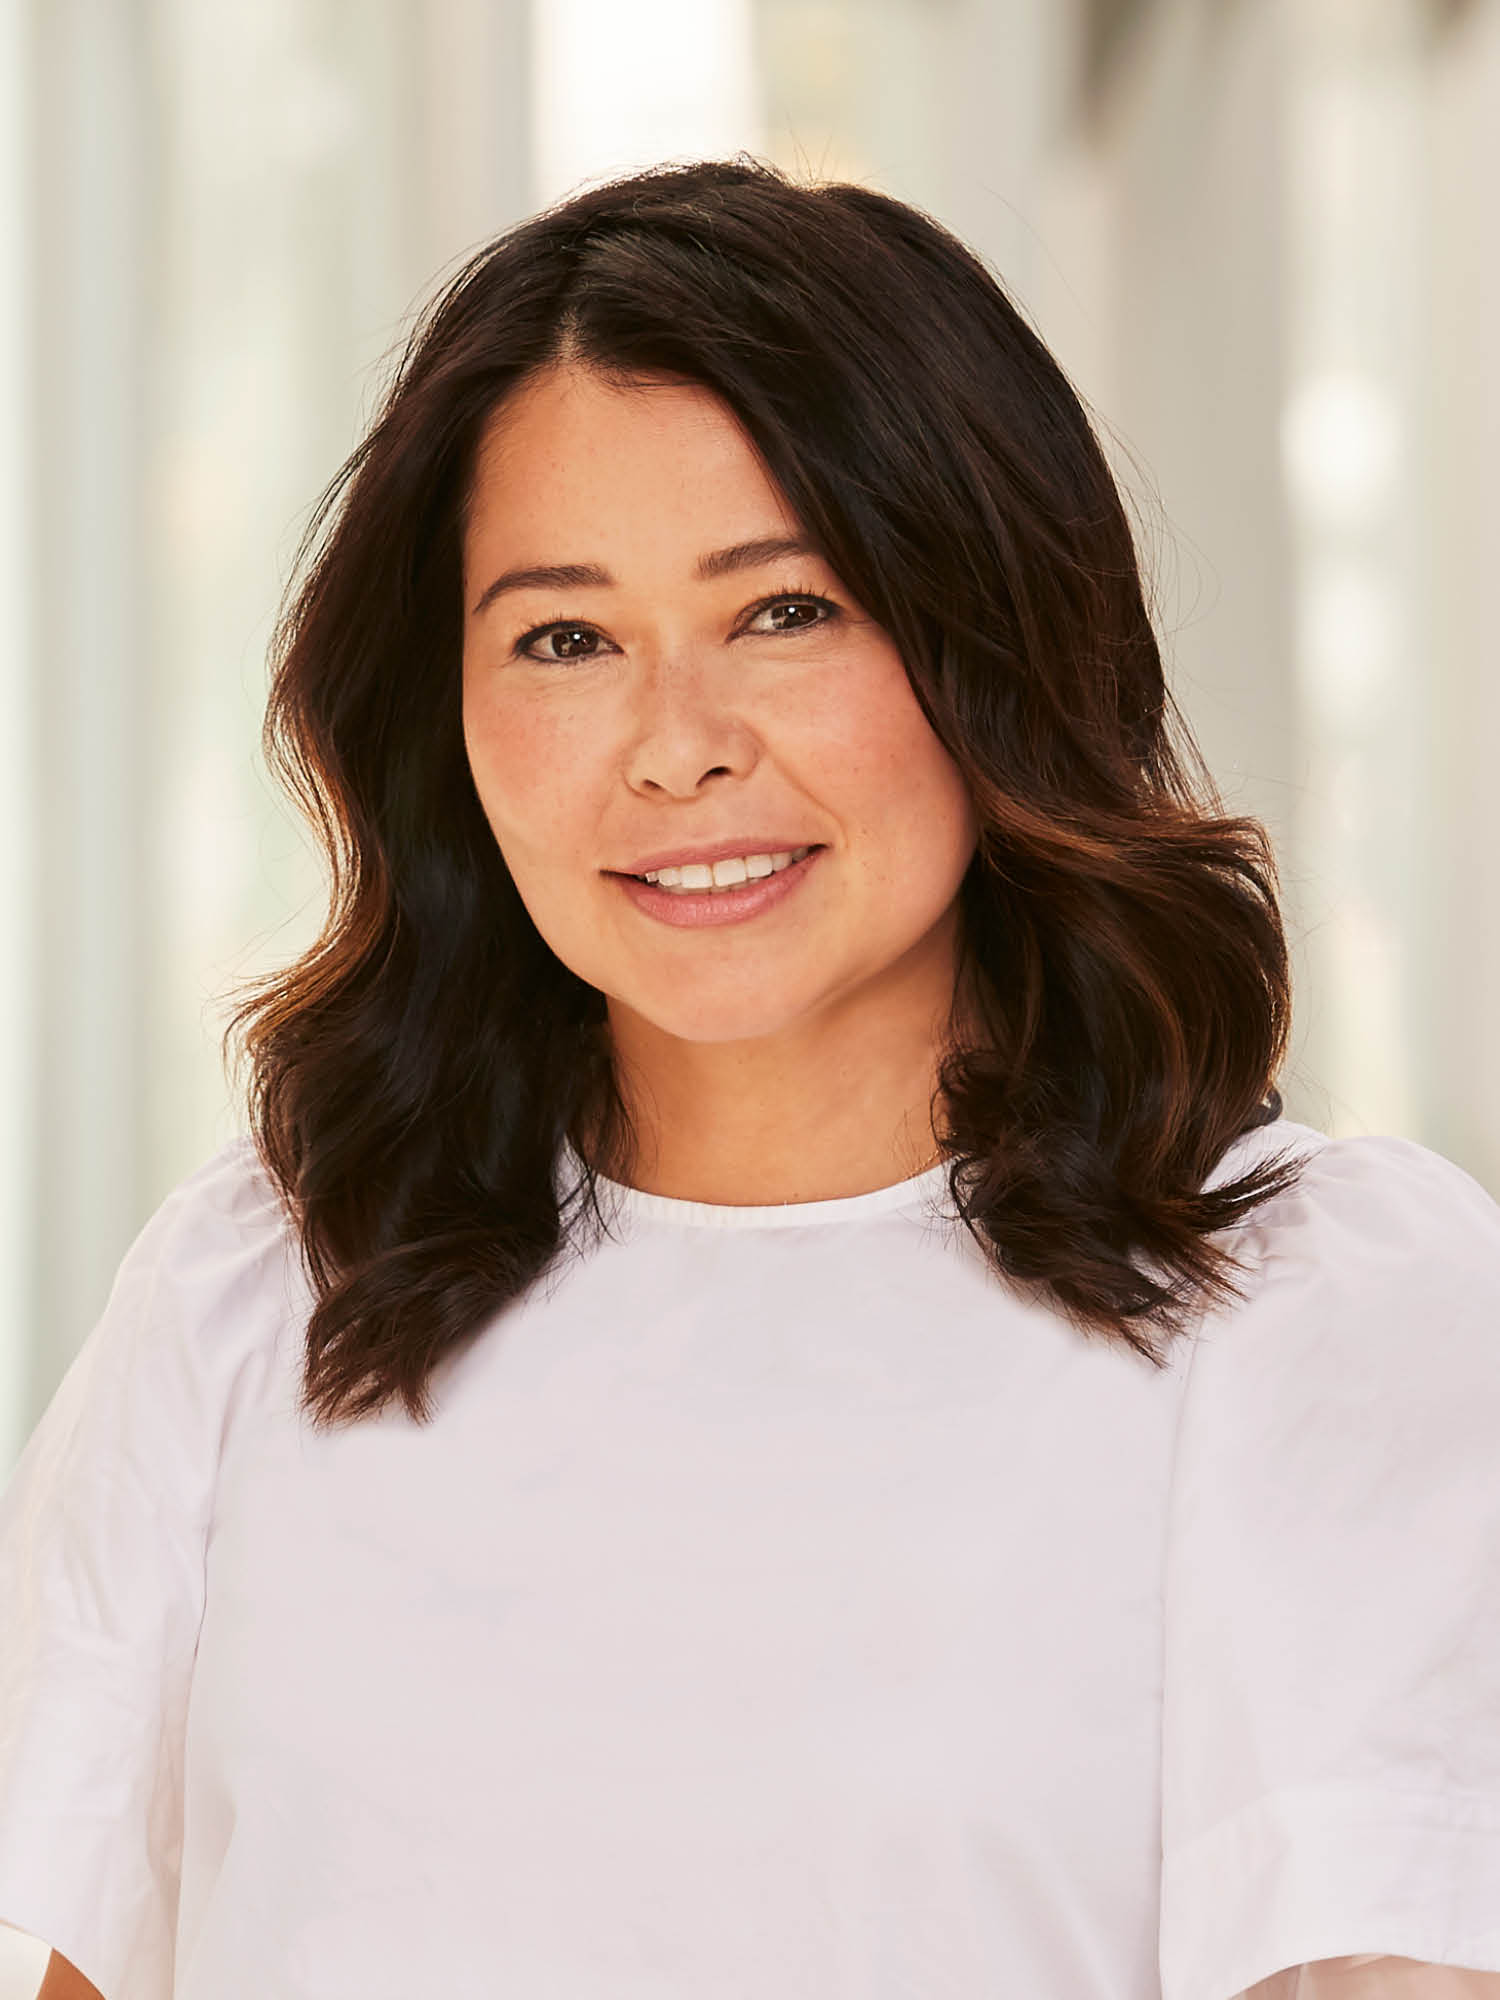 Masayo Hashimoto, a top realtor in New York City for Corcoran, a real estate firm in Chelsea/Flatiron.